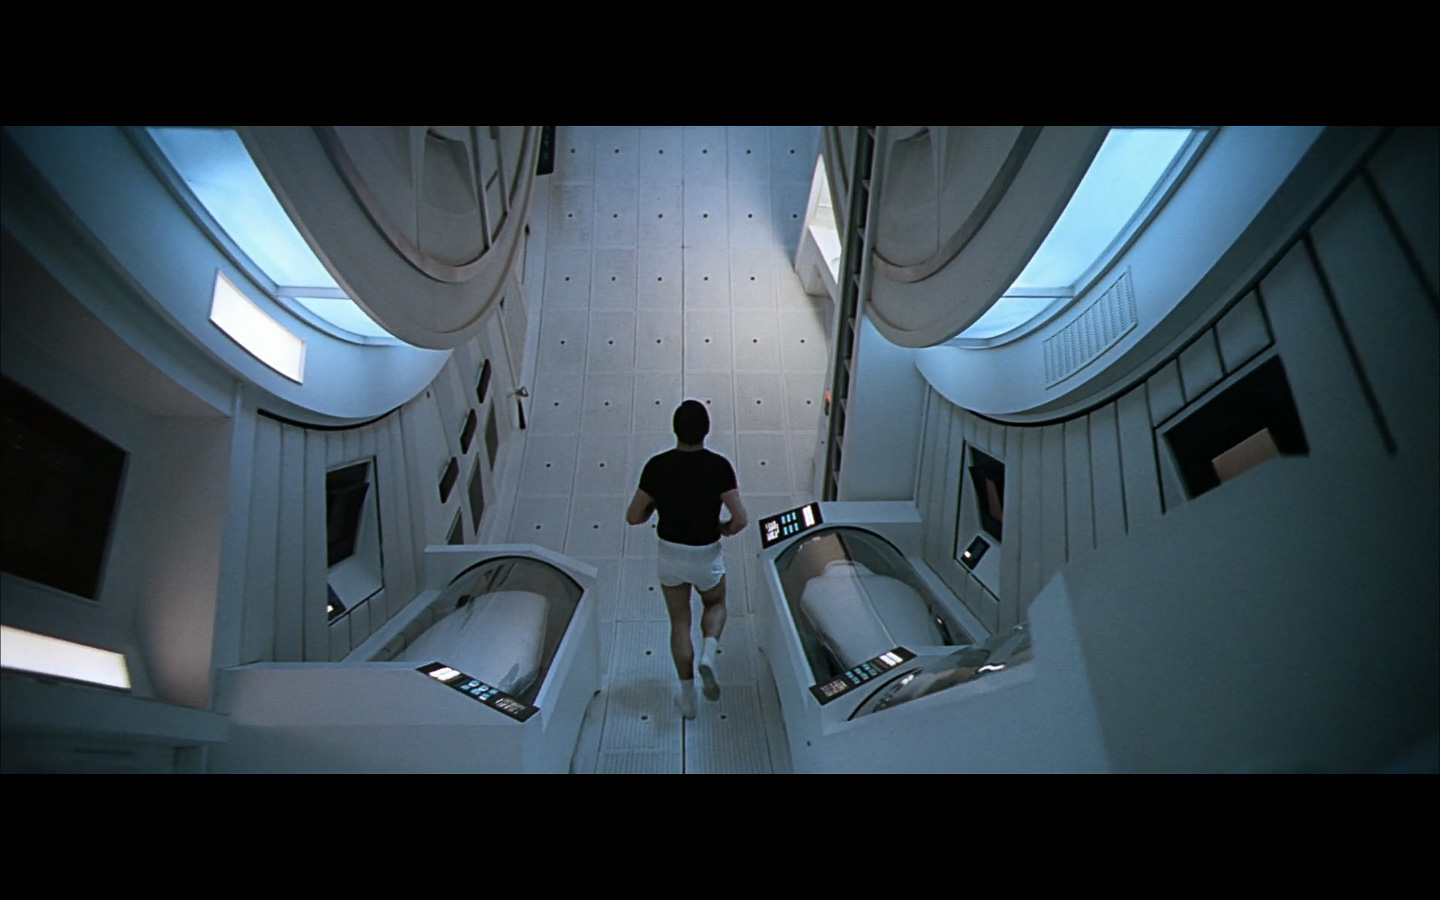 2001 Space Odyssey Cinematography-285